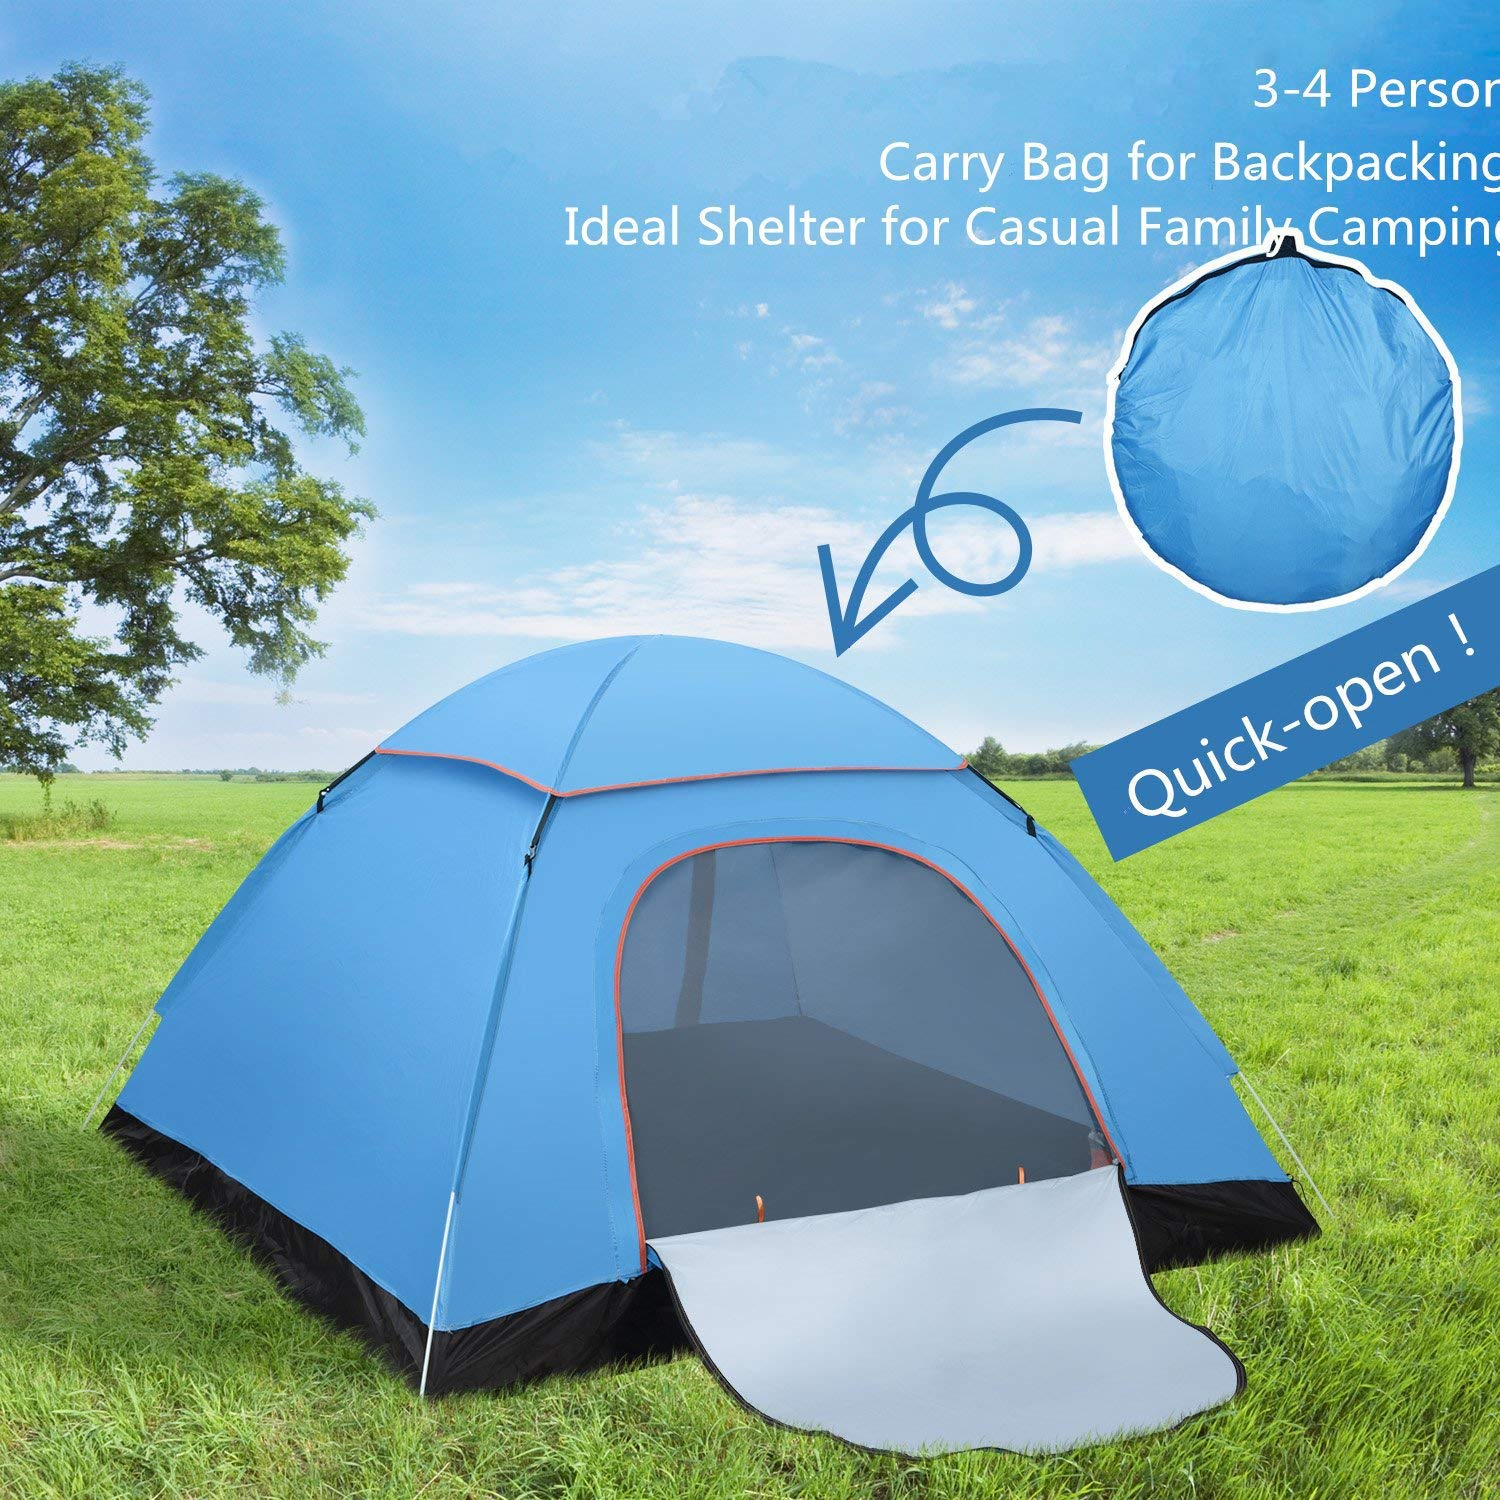 FITFIRST Pop Up Tent, Automatic Portable Beach Tent,Water Resistant Camping Tent, Outdoor Sun Shelter With Carry Bag for Family